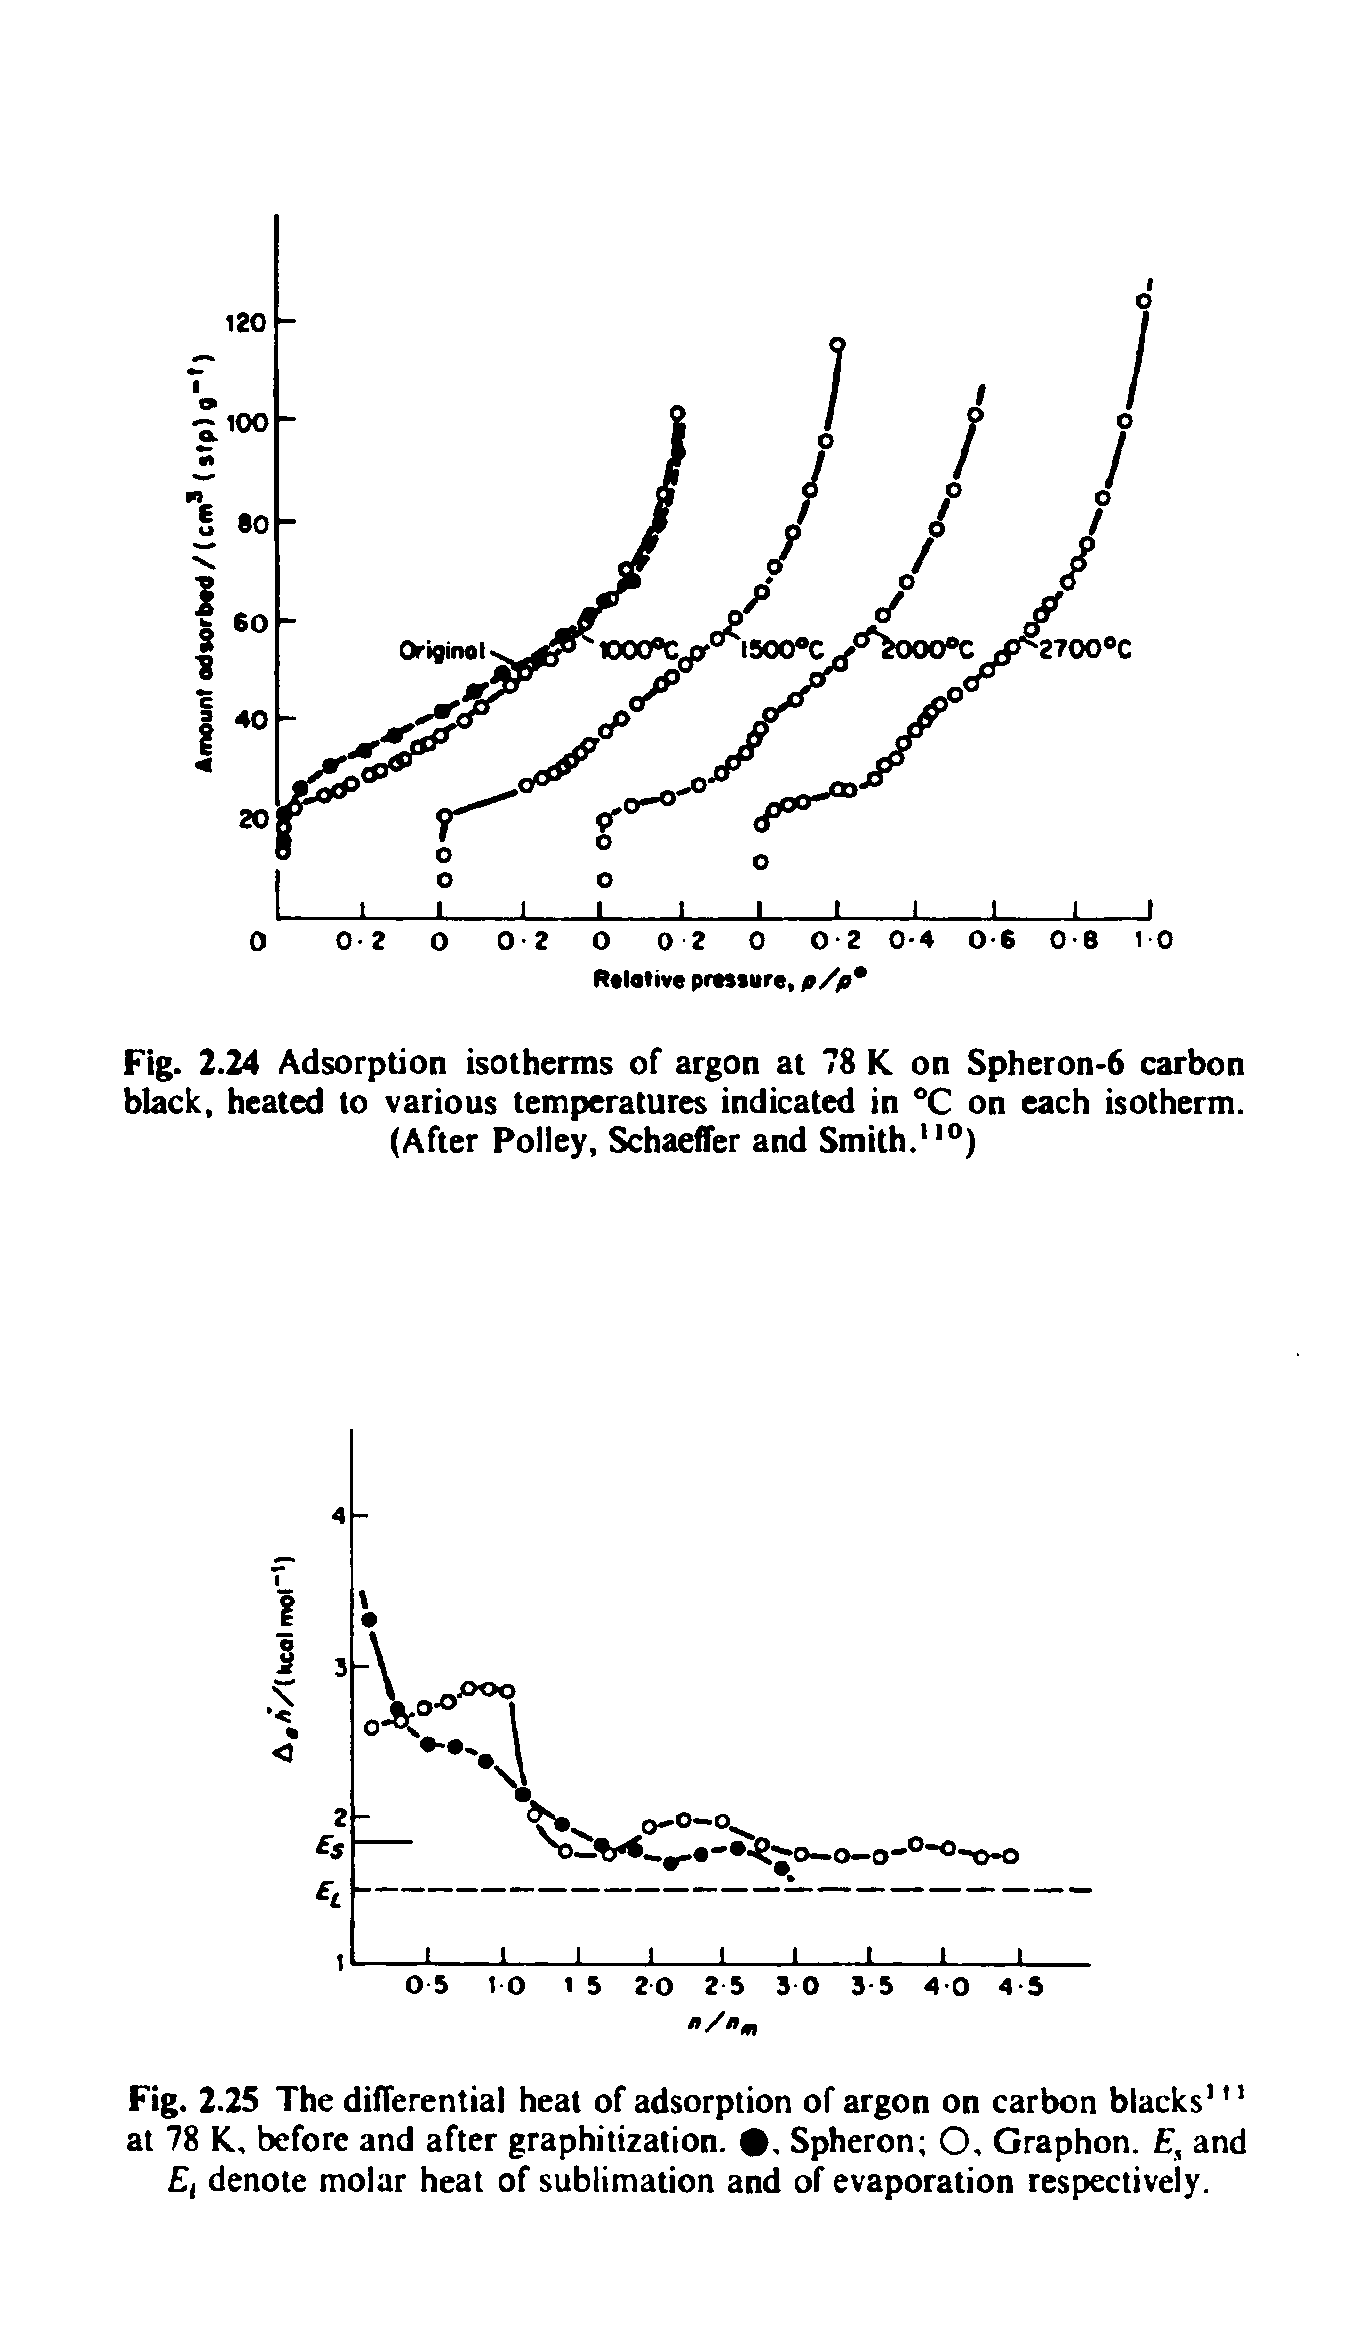 Fig. 2.24 Adsorption isotherms of argon at 78 K on Spheron-6 carbon black, heated to various temperatures indicated in °C on each isotherm. (After Polley, Schaeffer and Smith. )...